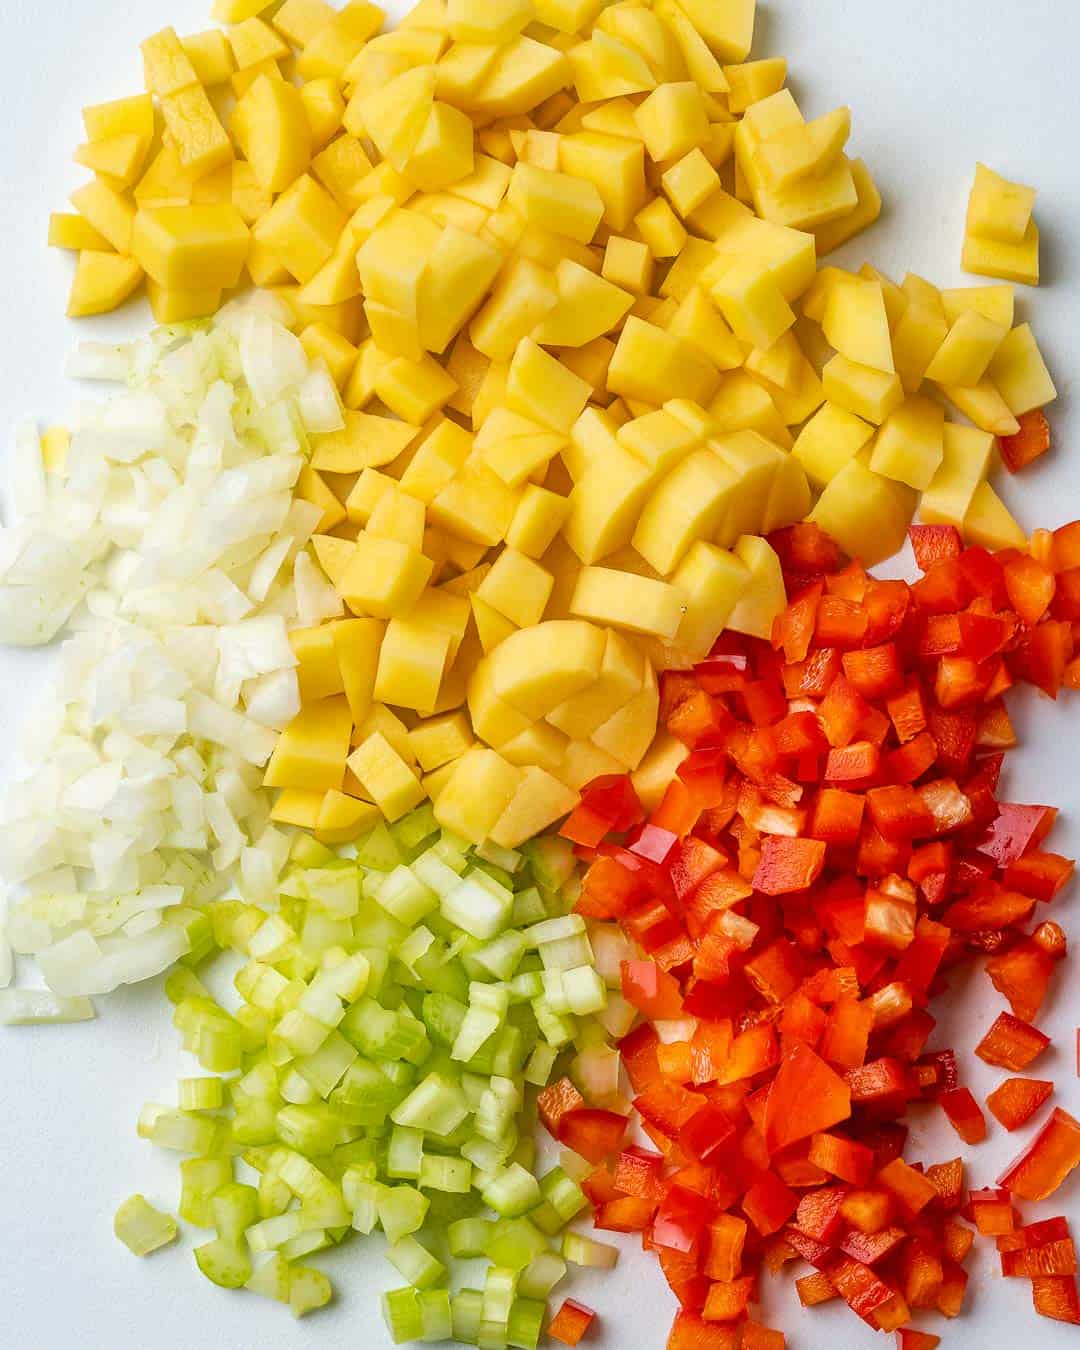 Corn, peppers, celery, and onion chopped on cutting board.